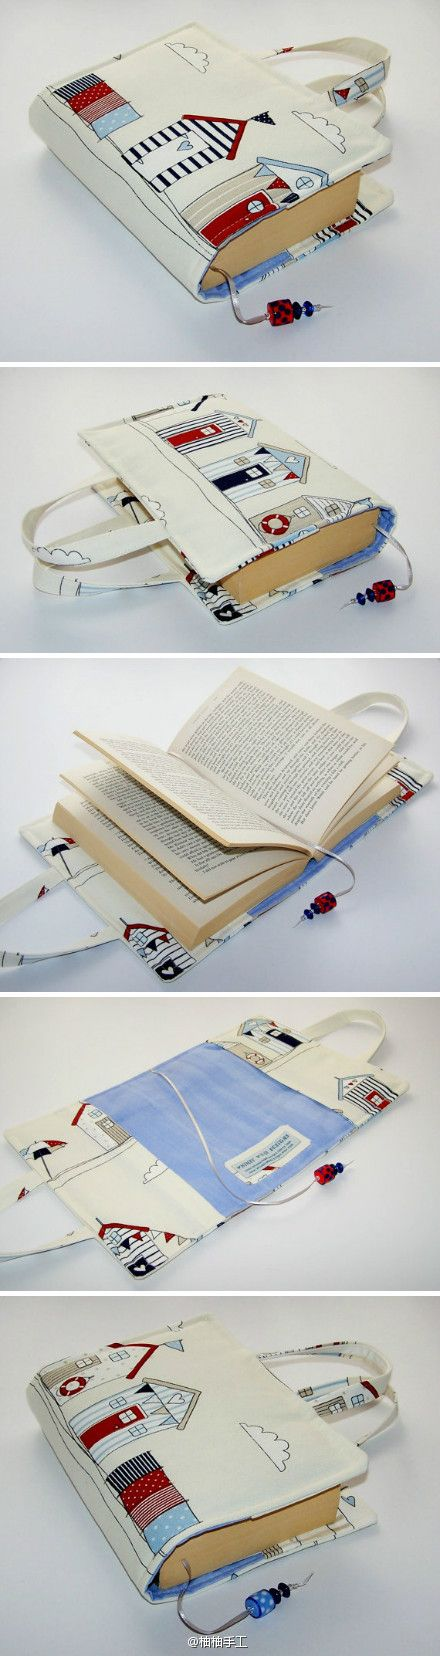 Bookcover/carrycase